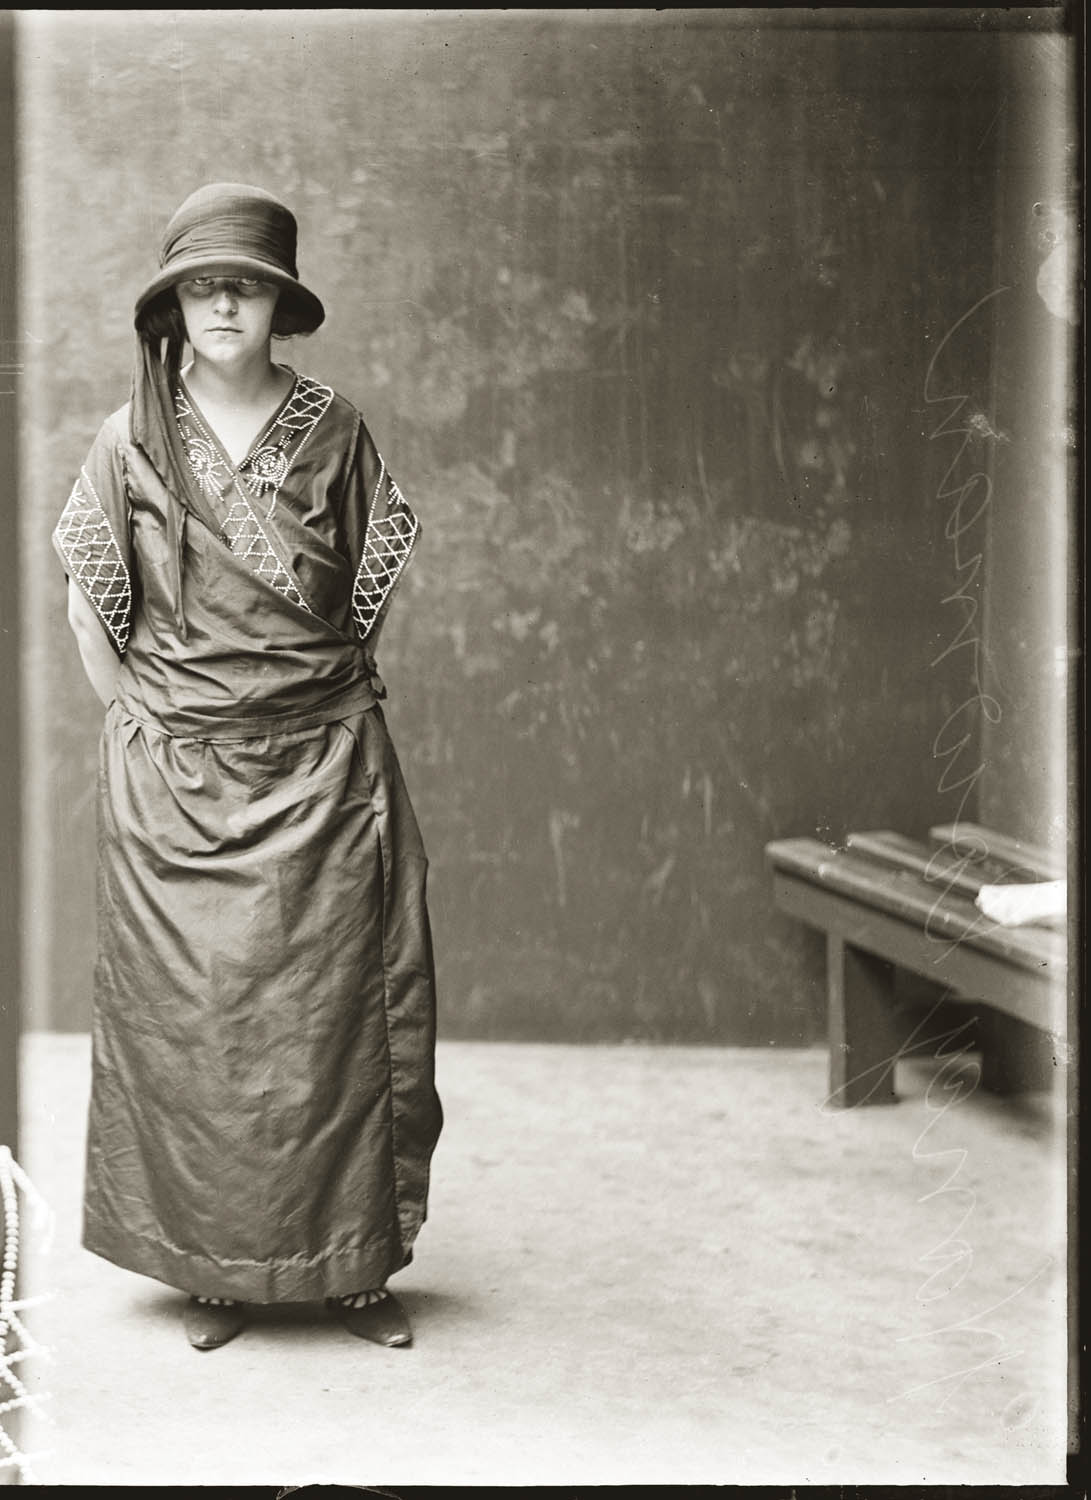 Mug shot of Nancy Cowman, 21 February 1924, probably Central Police Station, Sydney.